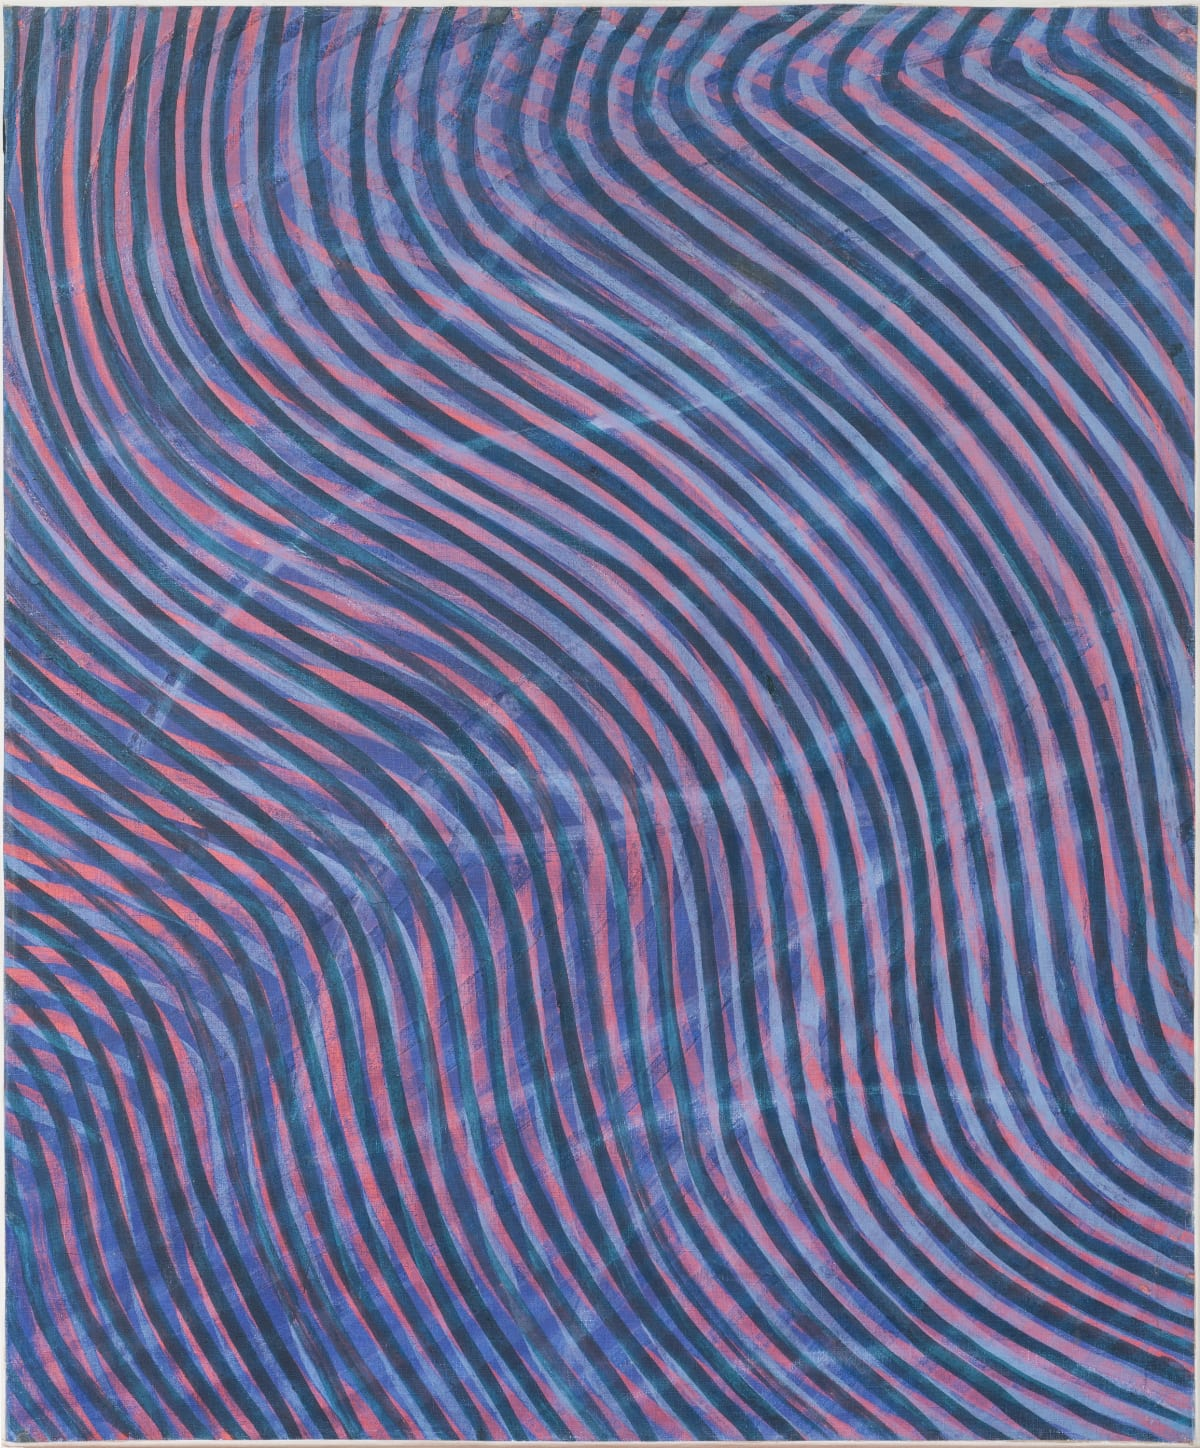 Stanley William Hayter, Interference, 1966